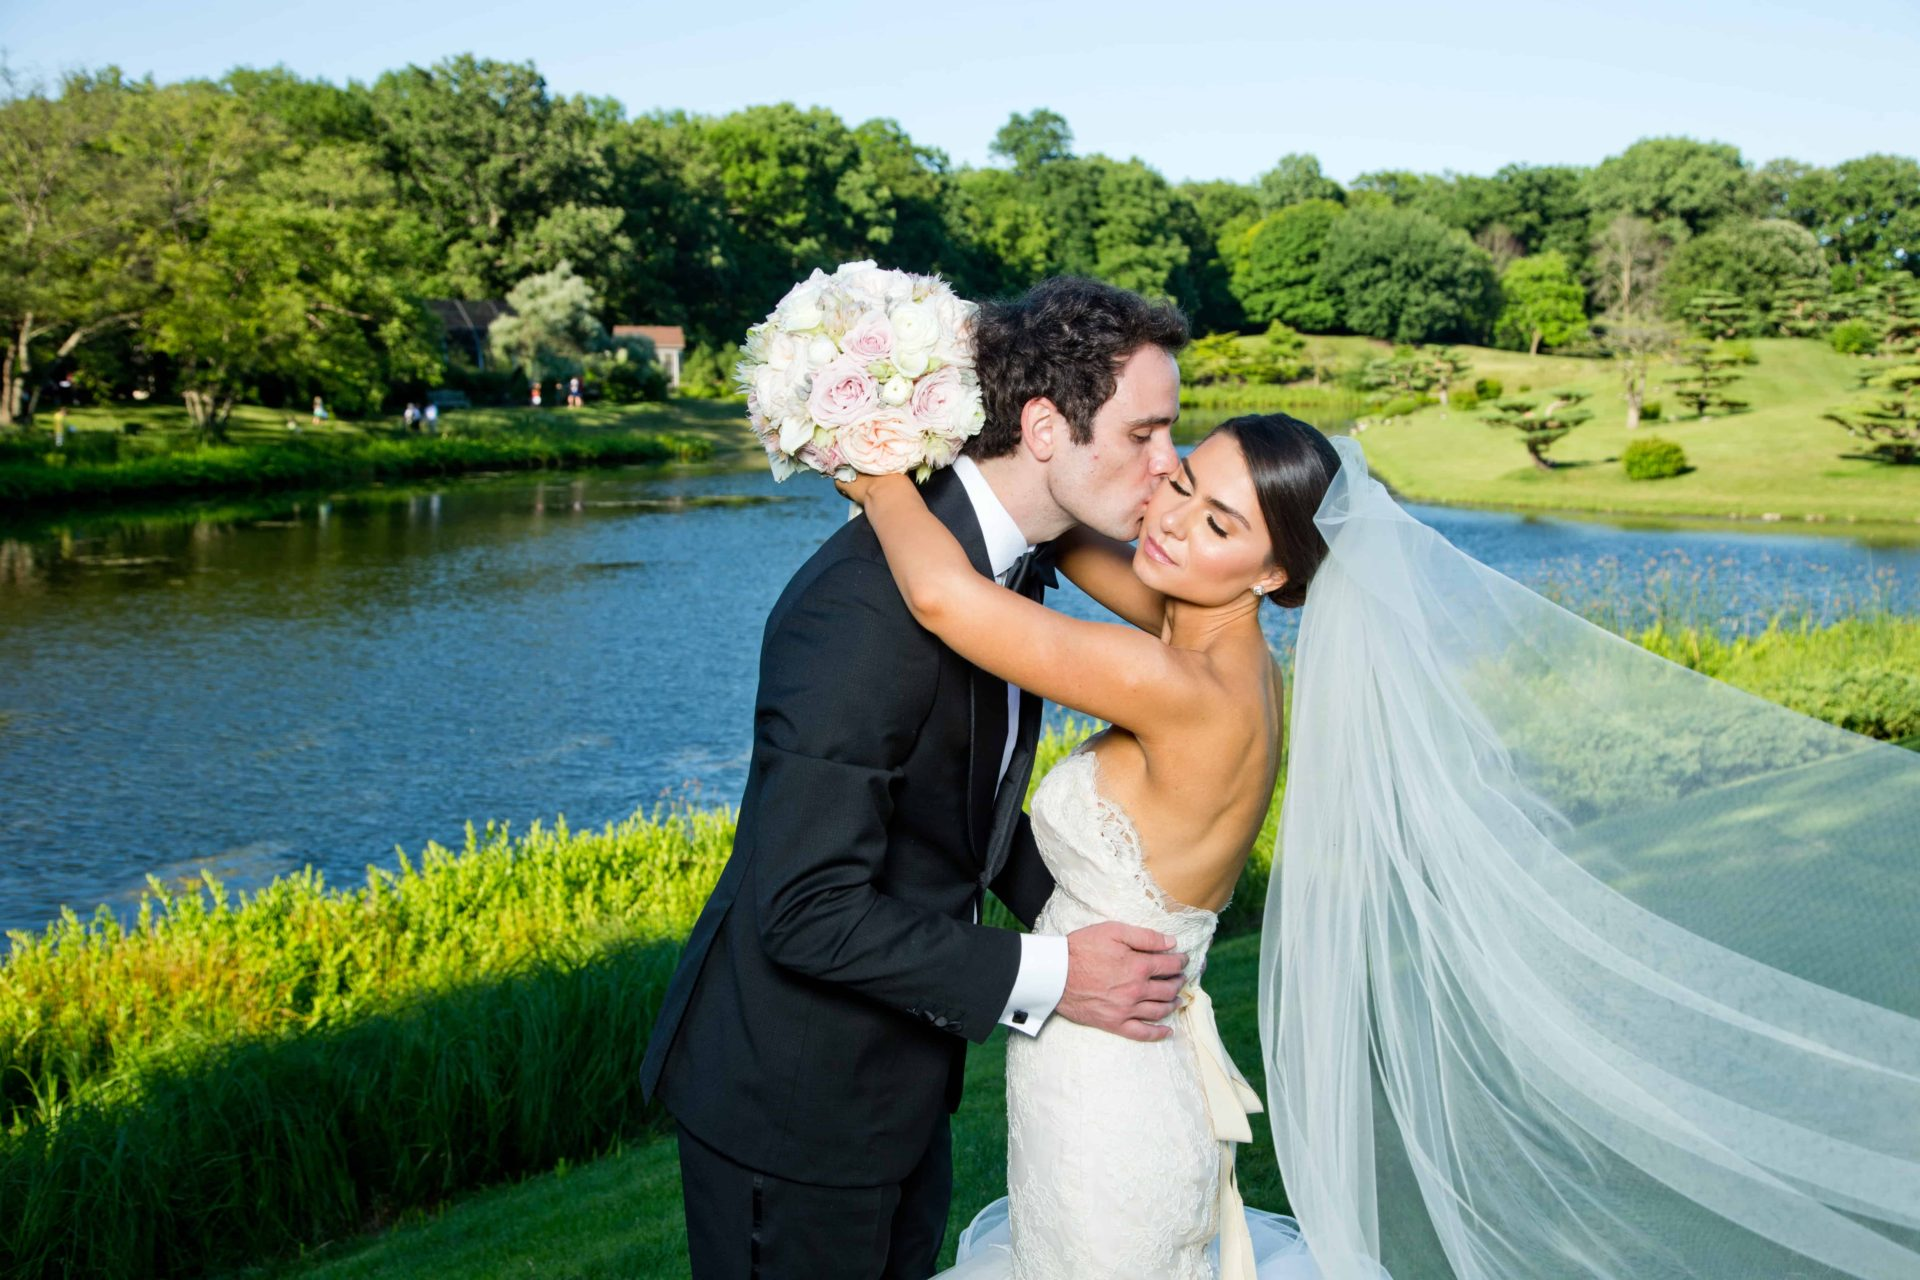 Summer wedding at Chicago Botanic Gardens